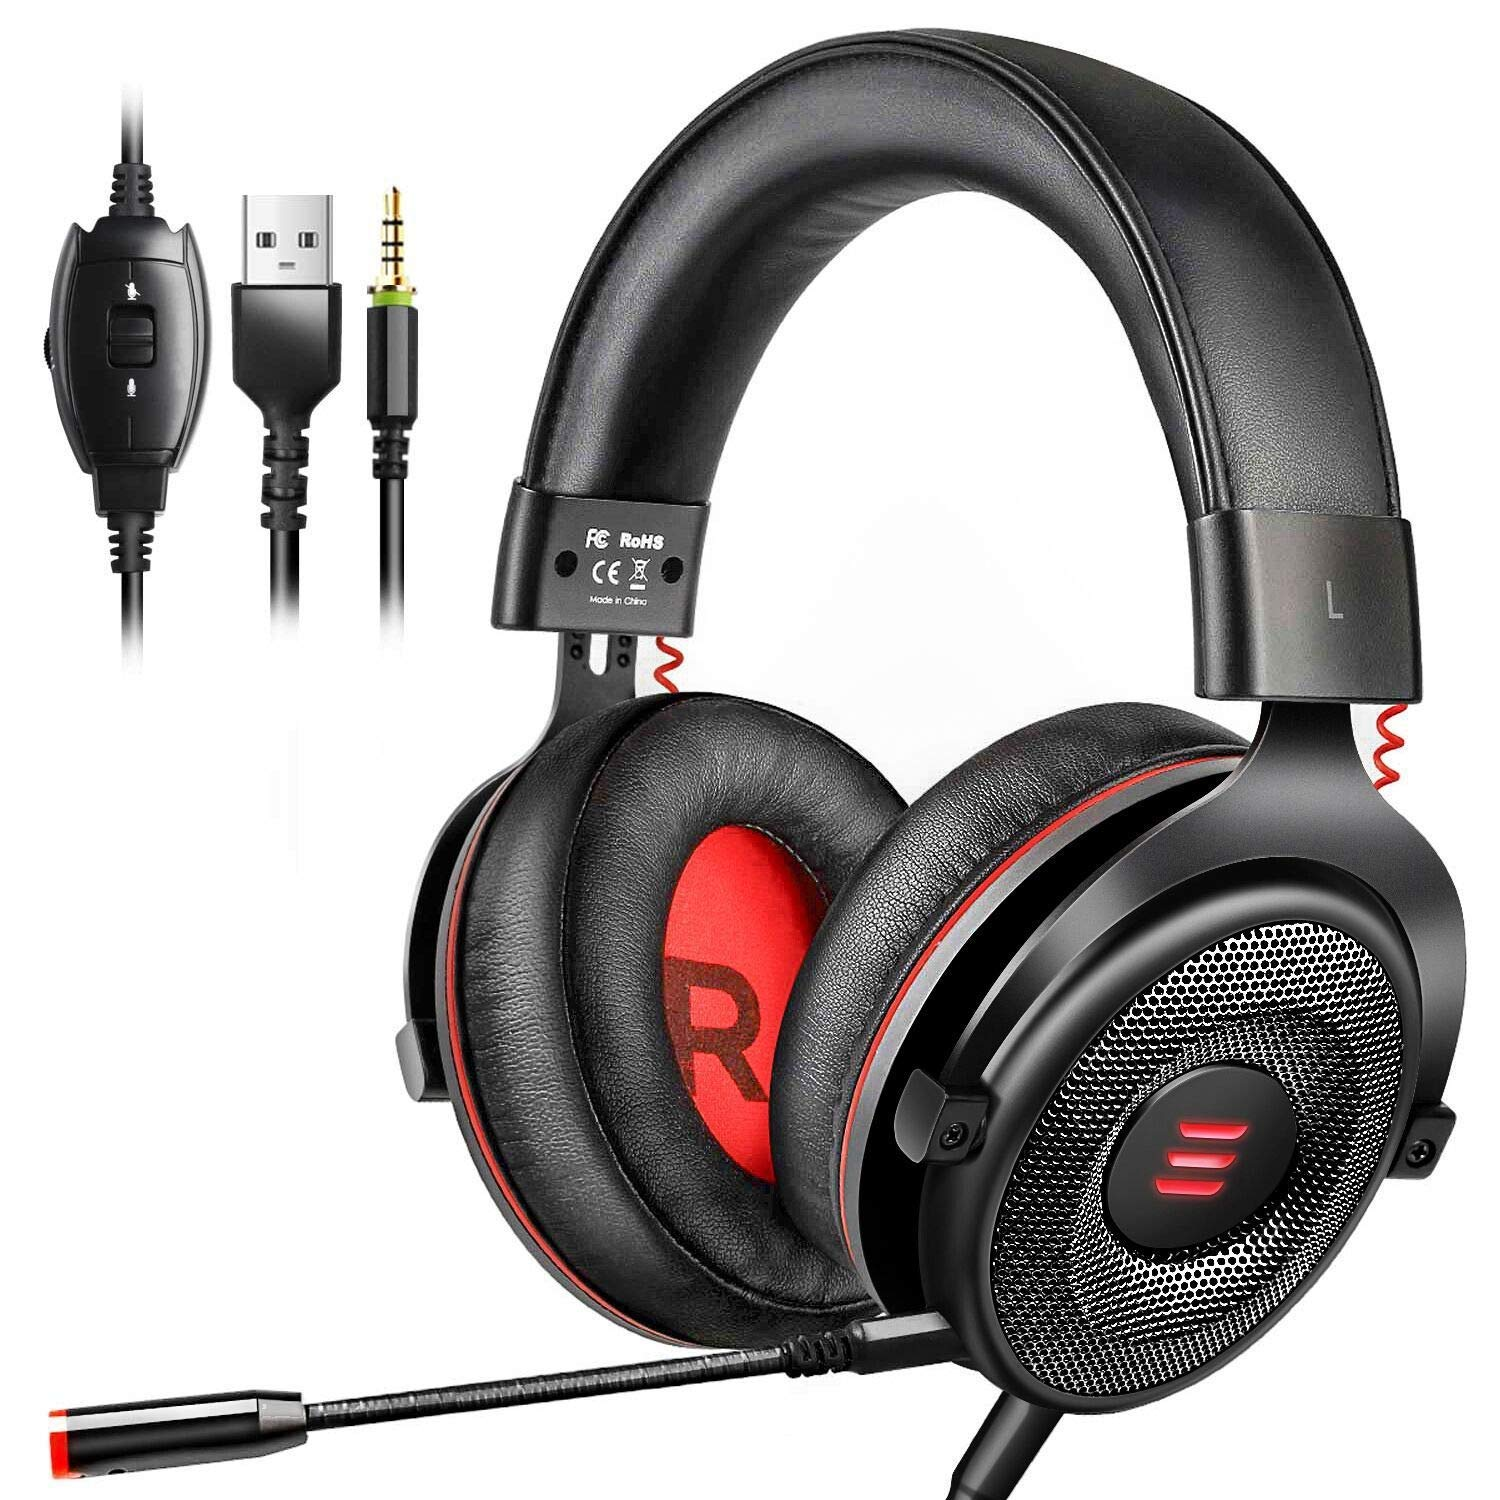 7.1 Surround Sound Gaming Headset w/ FREE software driver